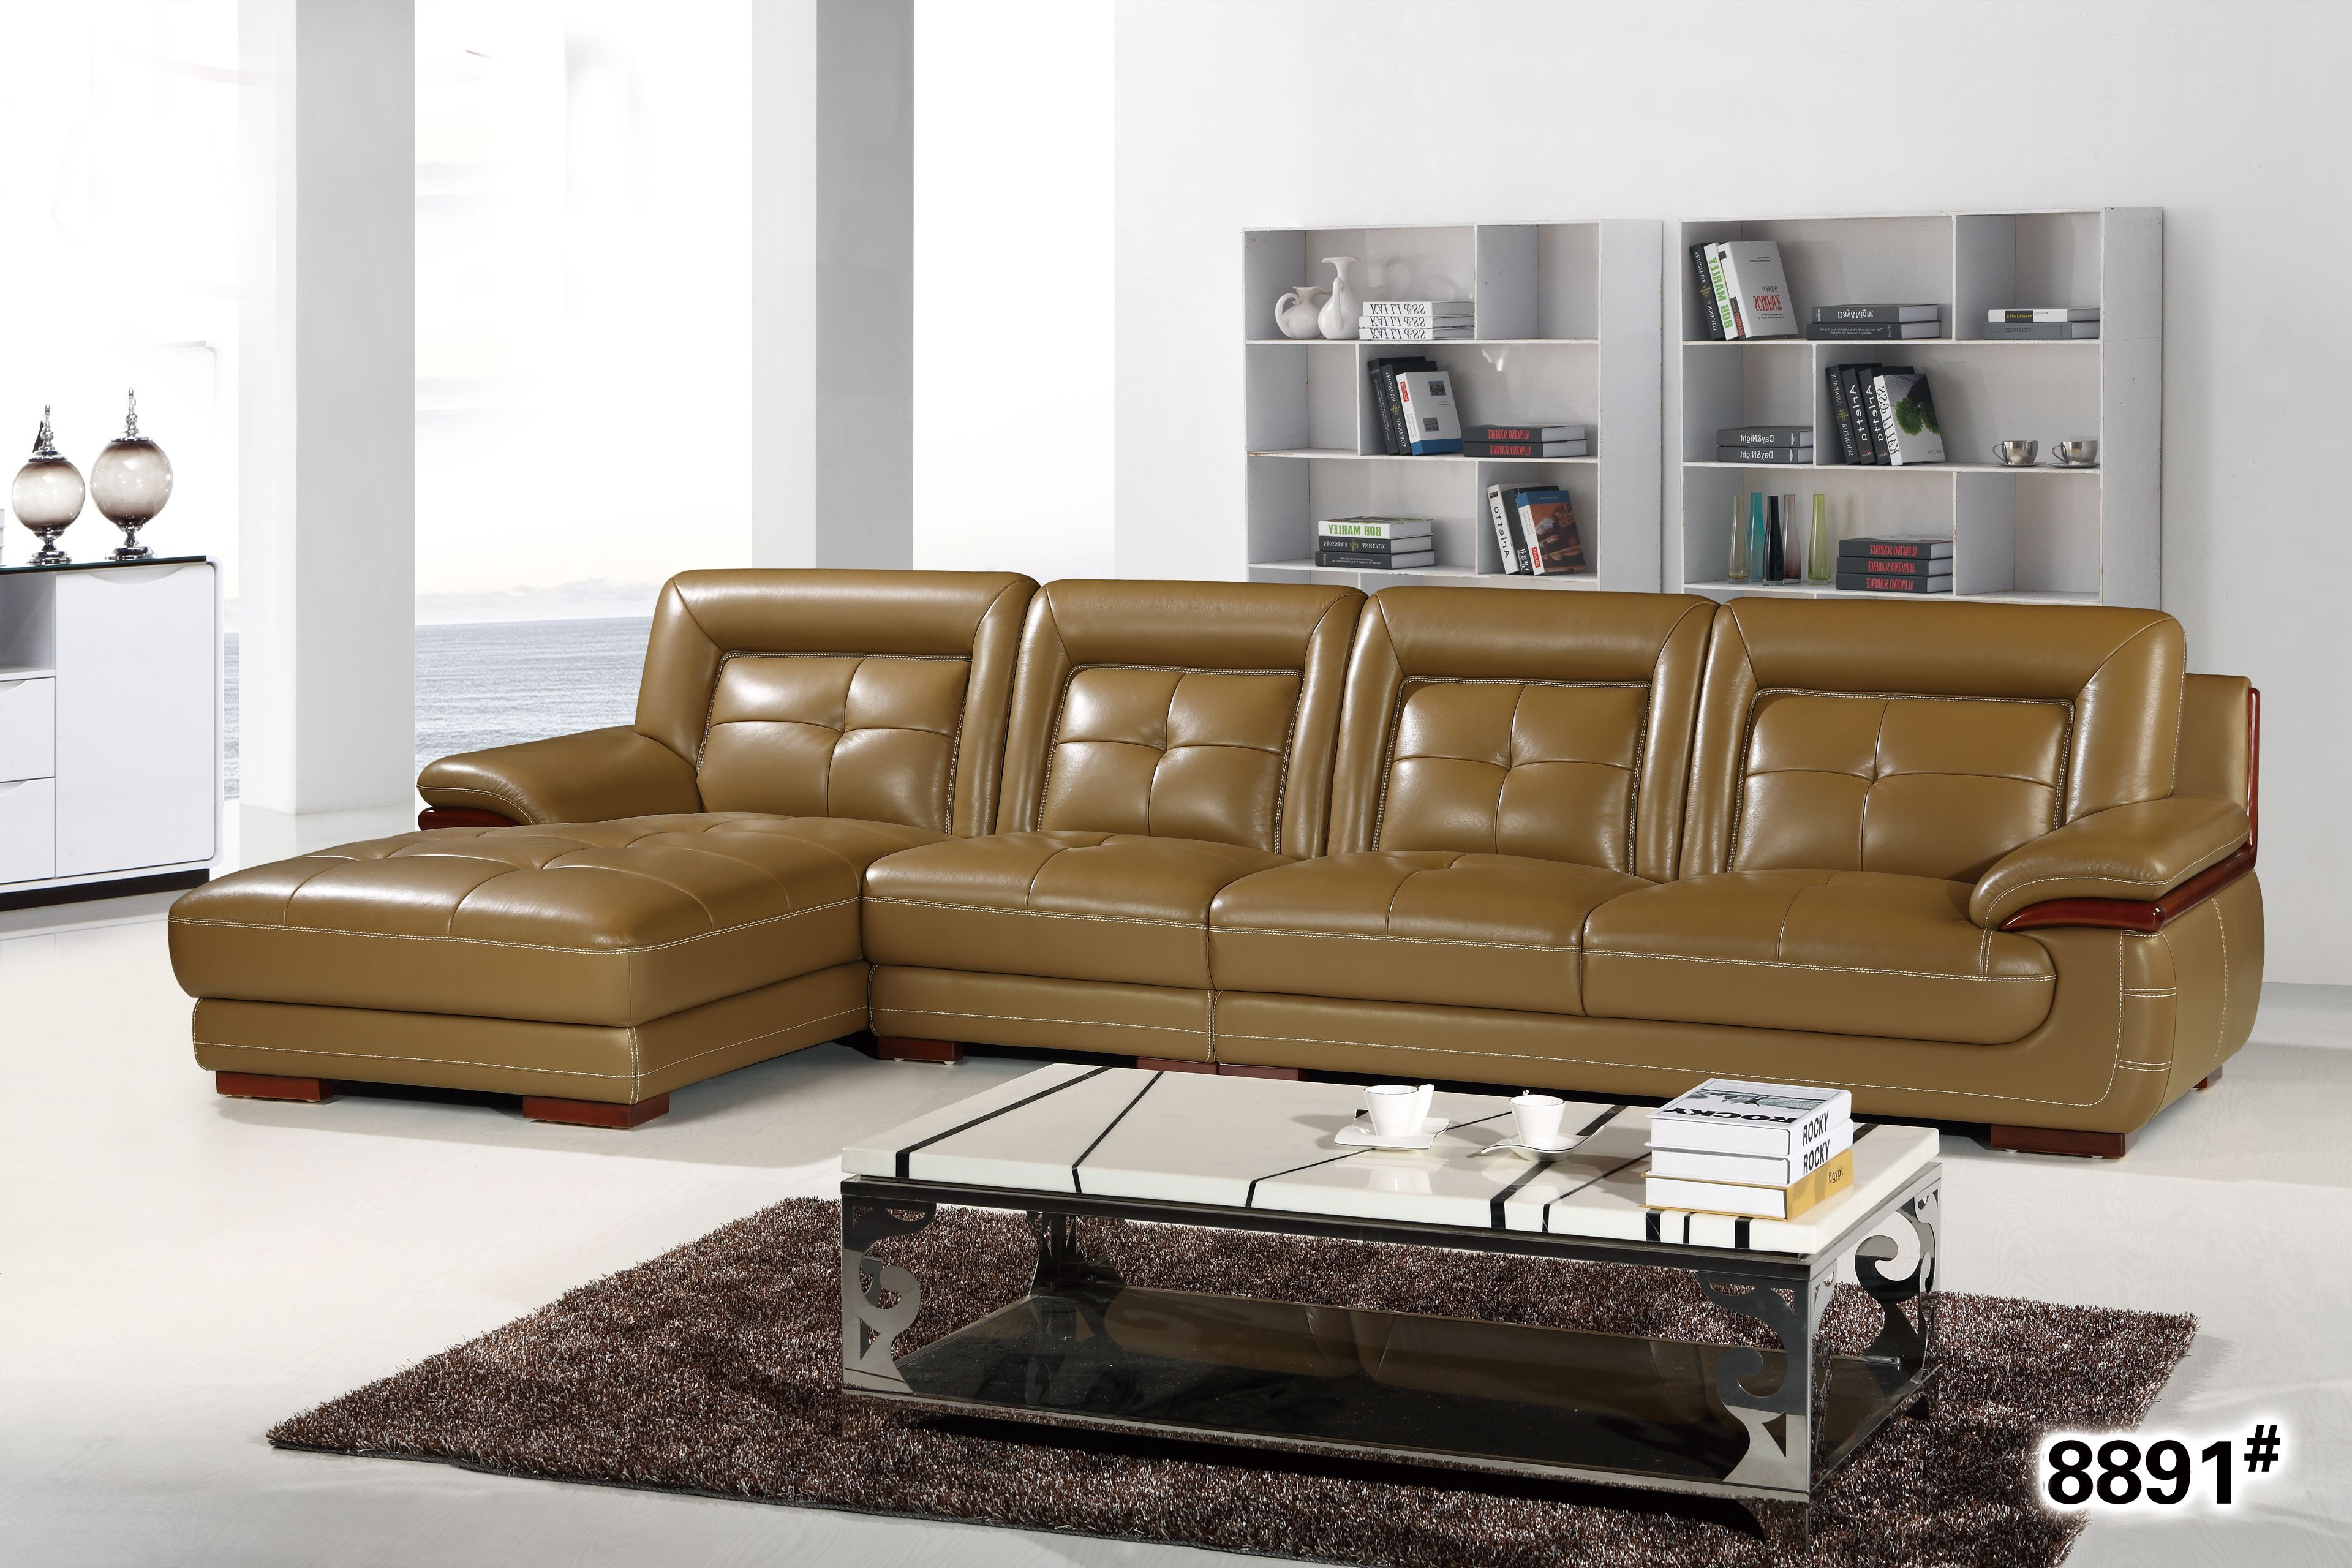 2014 Newly Designed Home Sofa Collection Presented By Lei